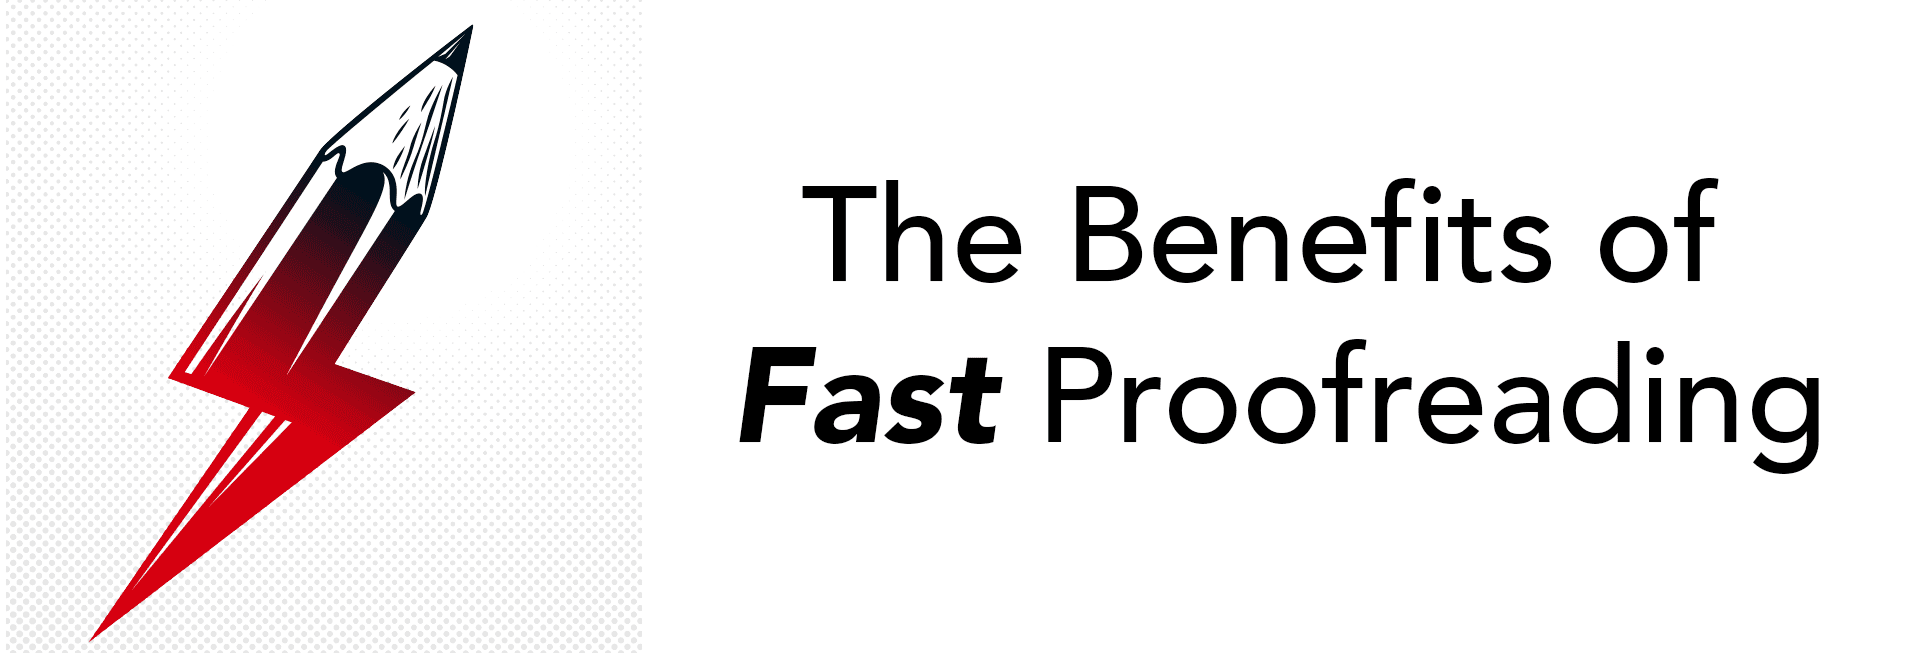 Fast Proofreading Benefits